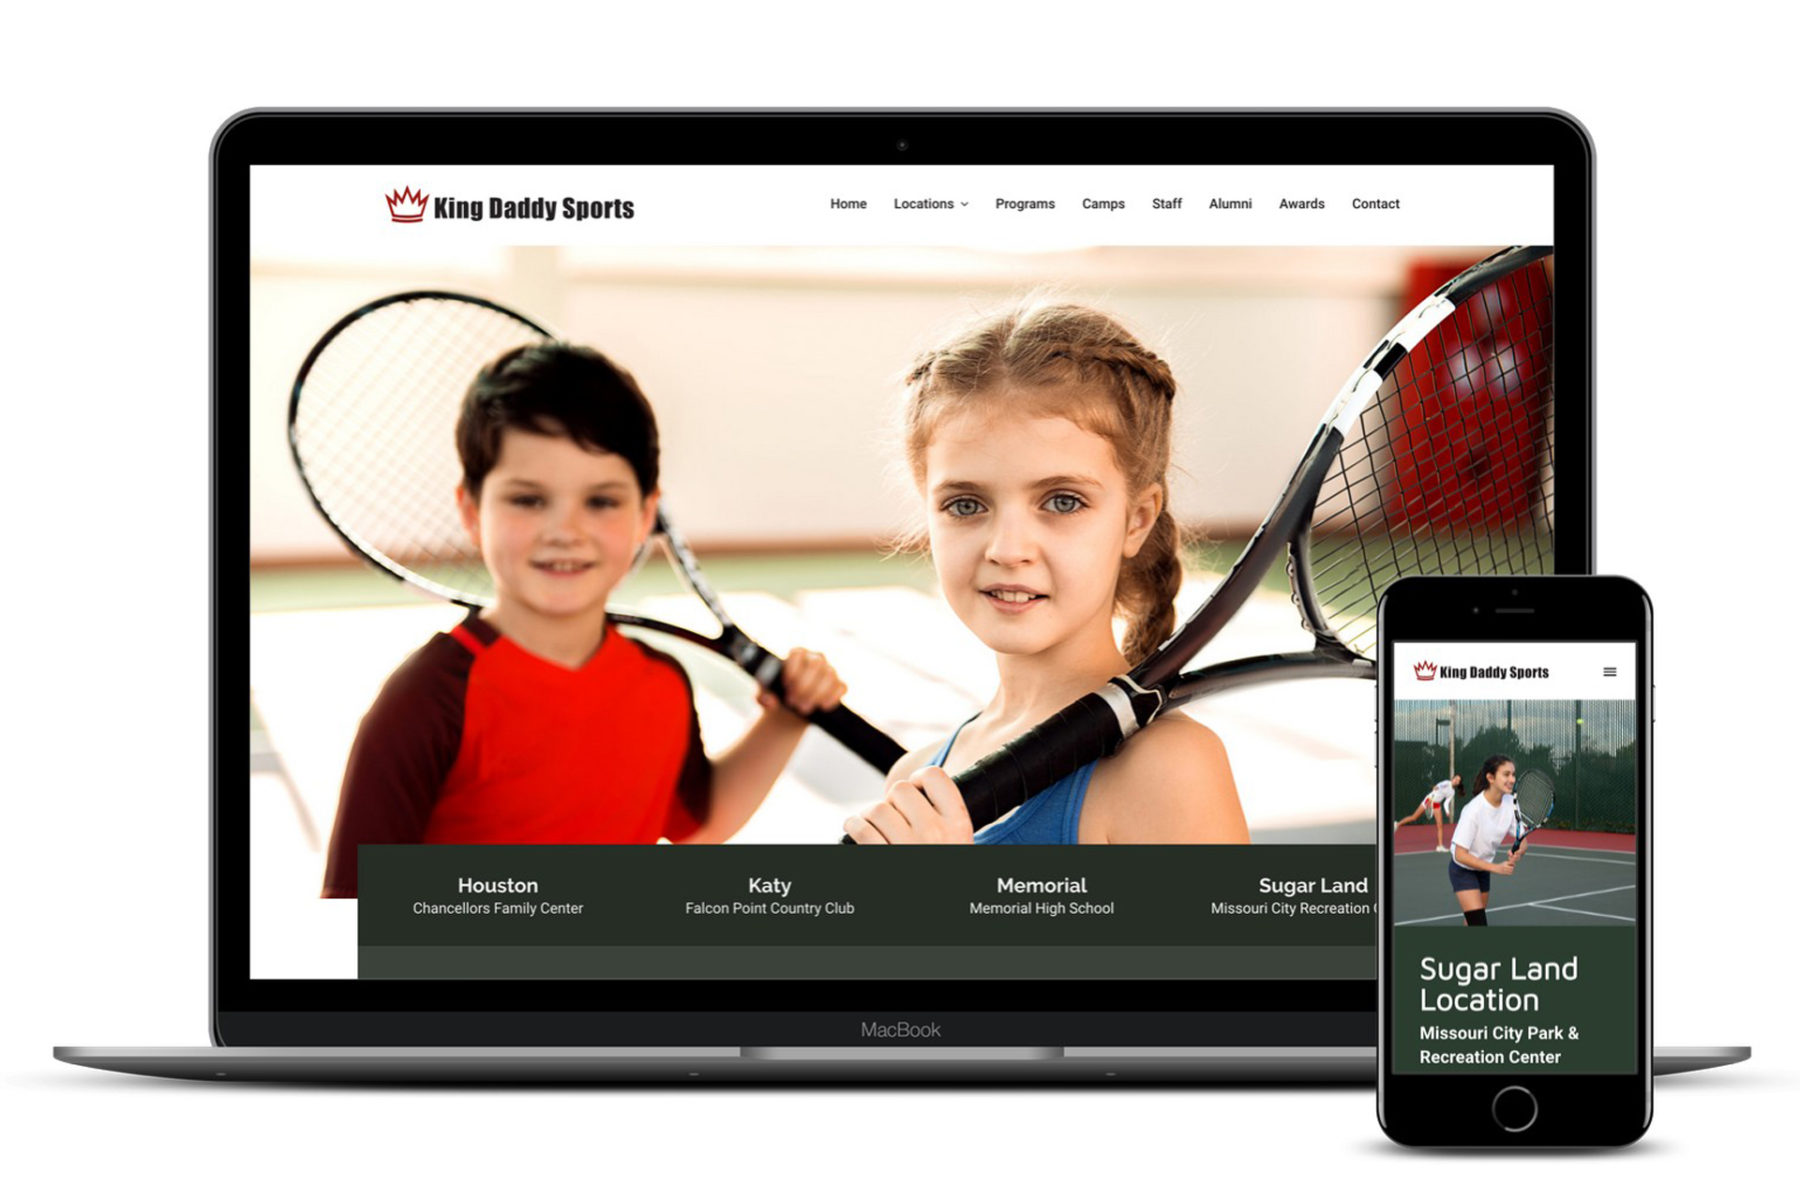 King Daddy Sports Website Design